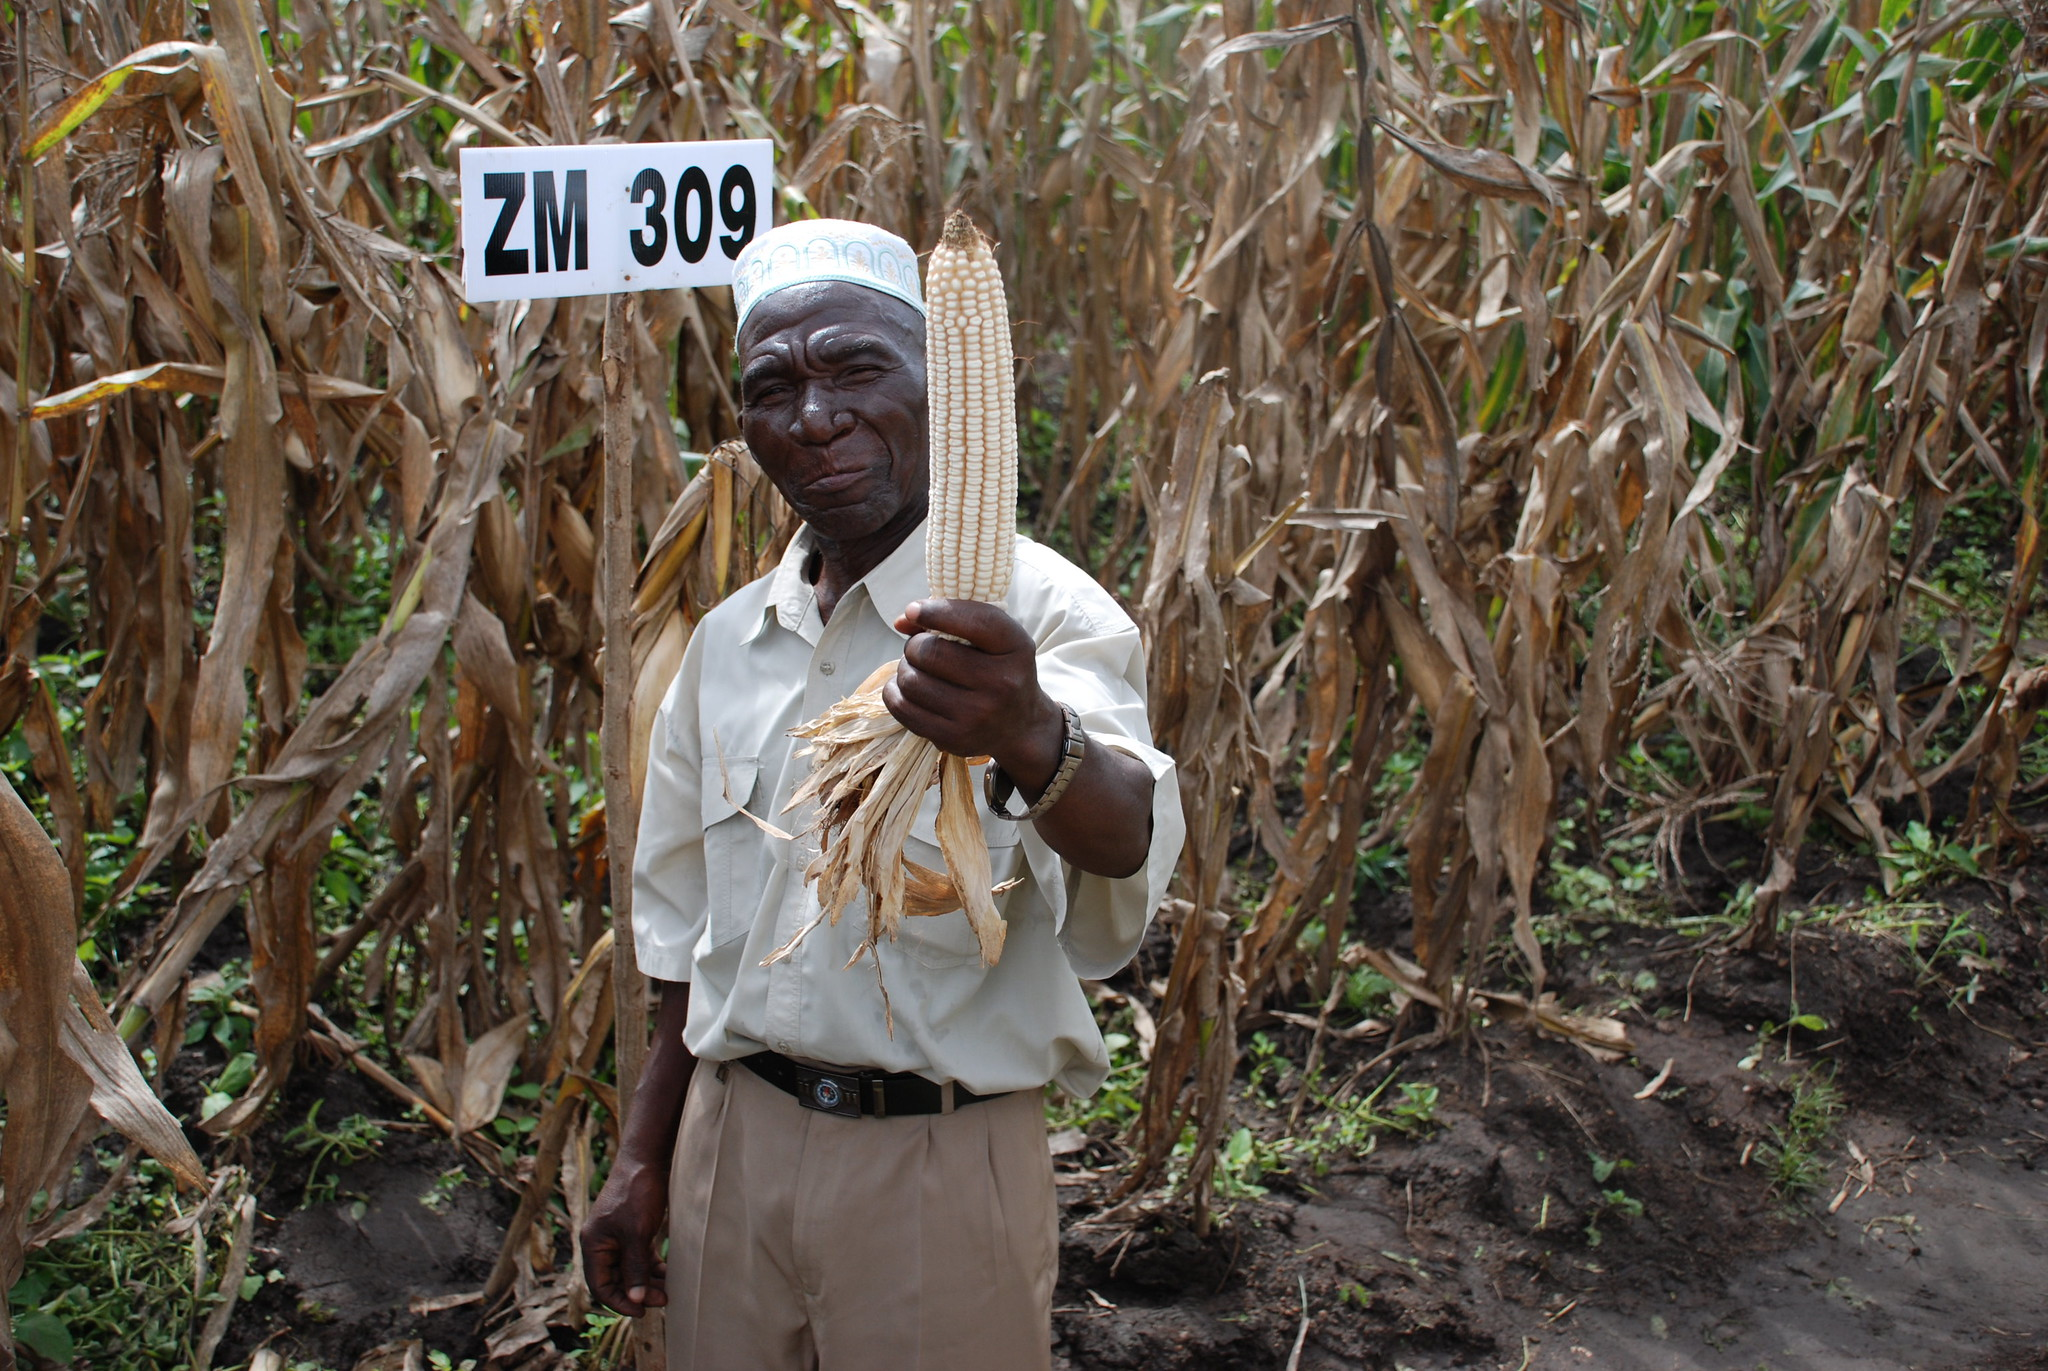 Farmer Bamusi Stambuli shows off a healthy ear of maize variety ZM 309 in Balaka, Malawi. (Photo: Anne Wangalachi/CIMMYT)